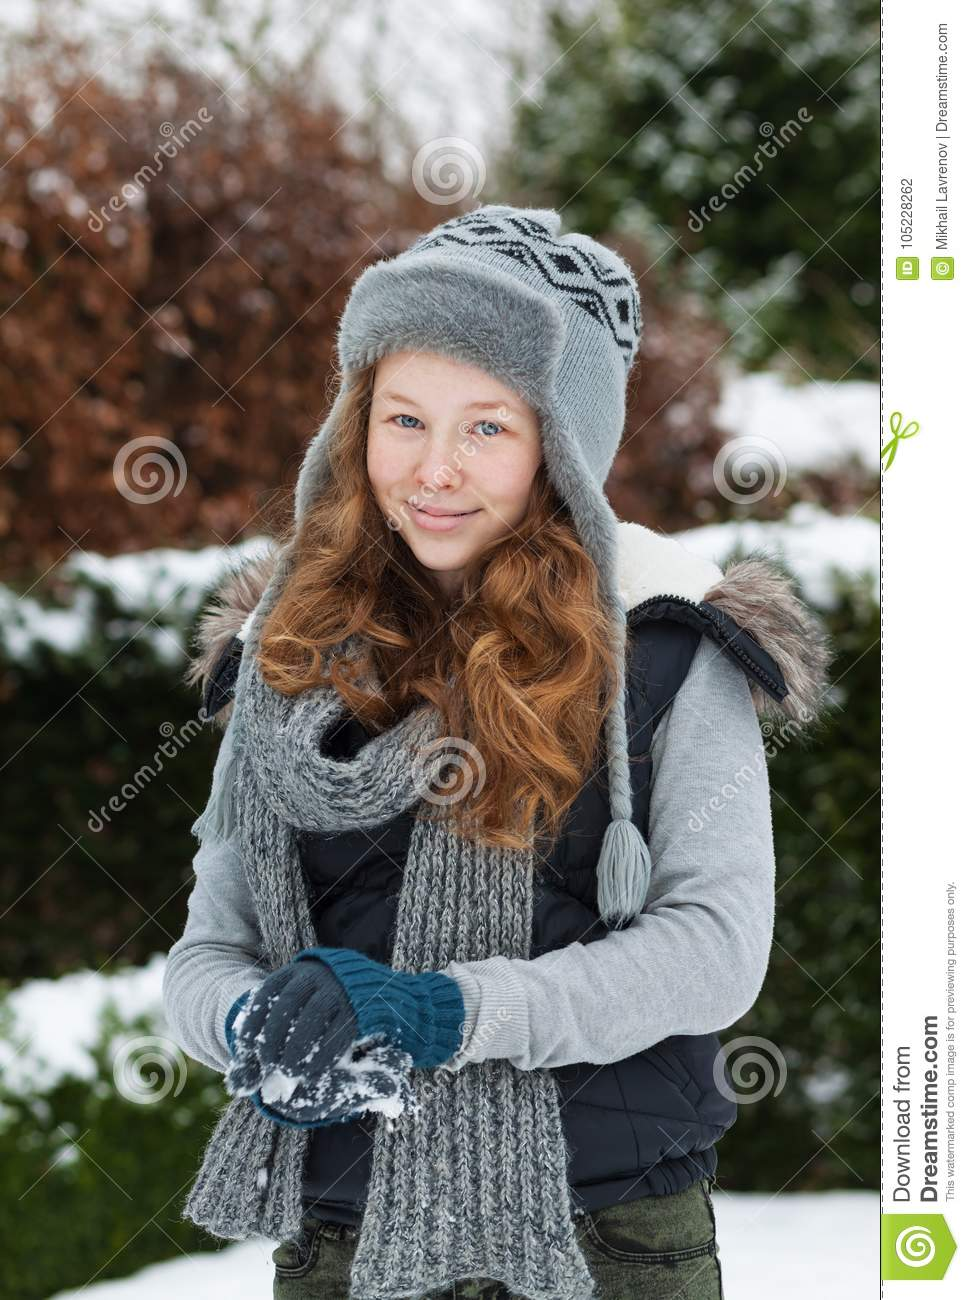 Blond teenager girl making a snowball in snowy park